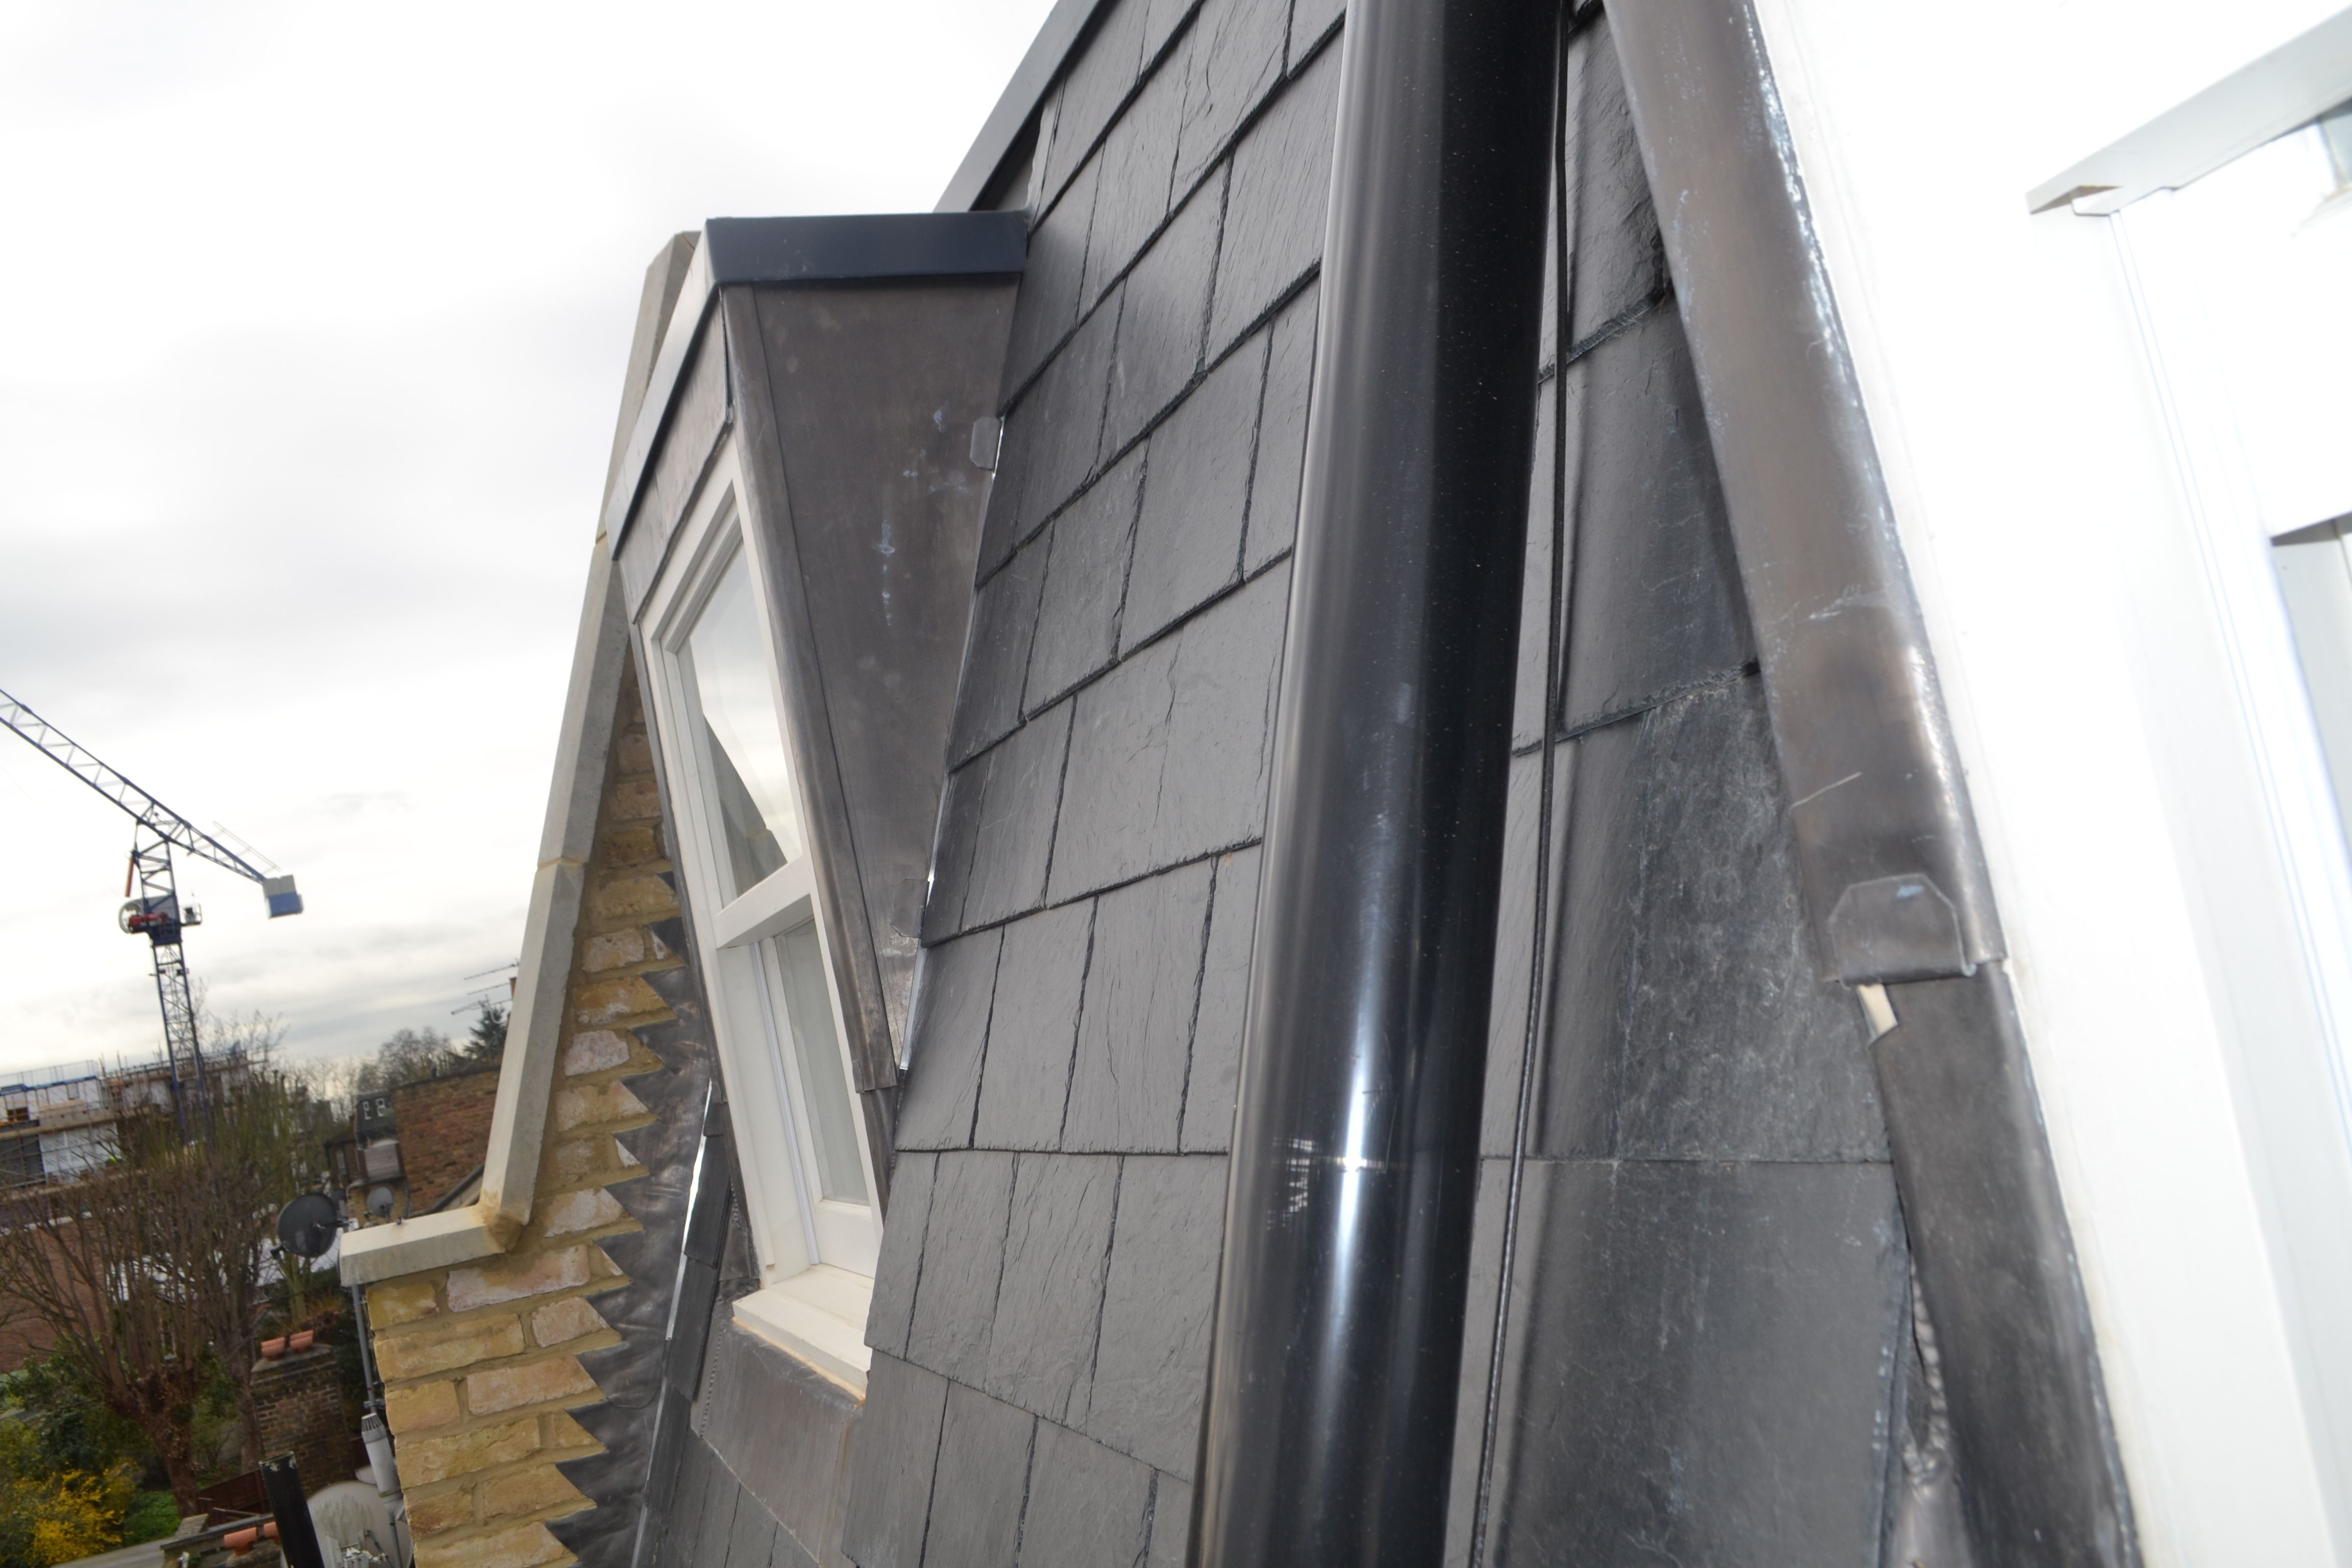 Mansard Loft Extension With Grey Slate Tiles White Pvc Fascia Black Pvc Guttering And High Performance 3 Layer F Roof Architecture Modern Roofing Roof Styles